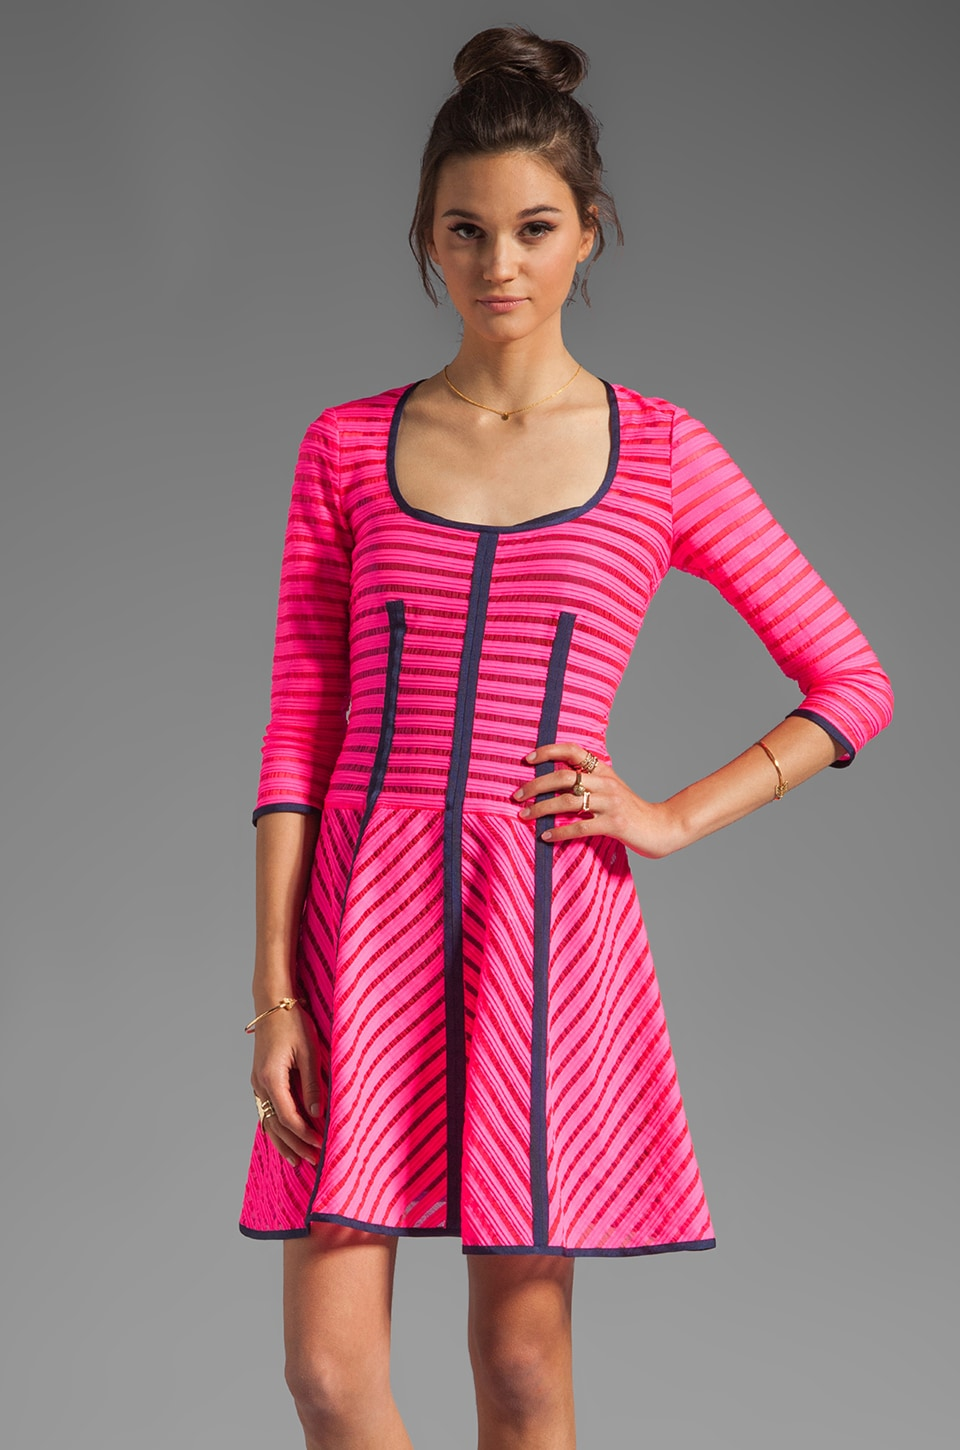 Nanette Lepore Auction Stripe 15 Minutes Dress in Shocking Pink